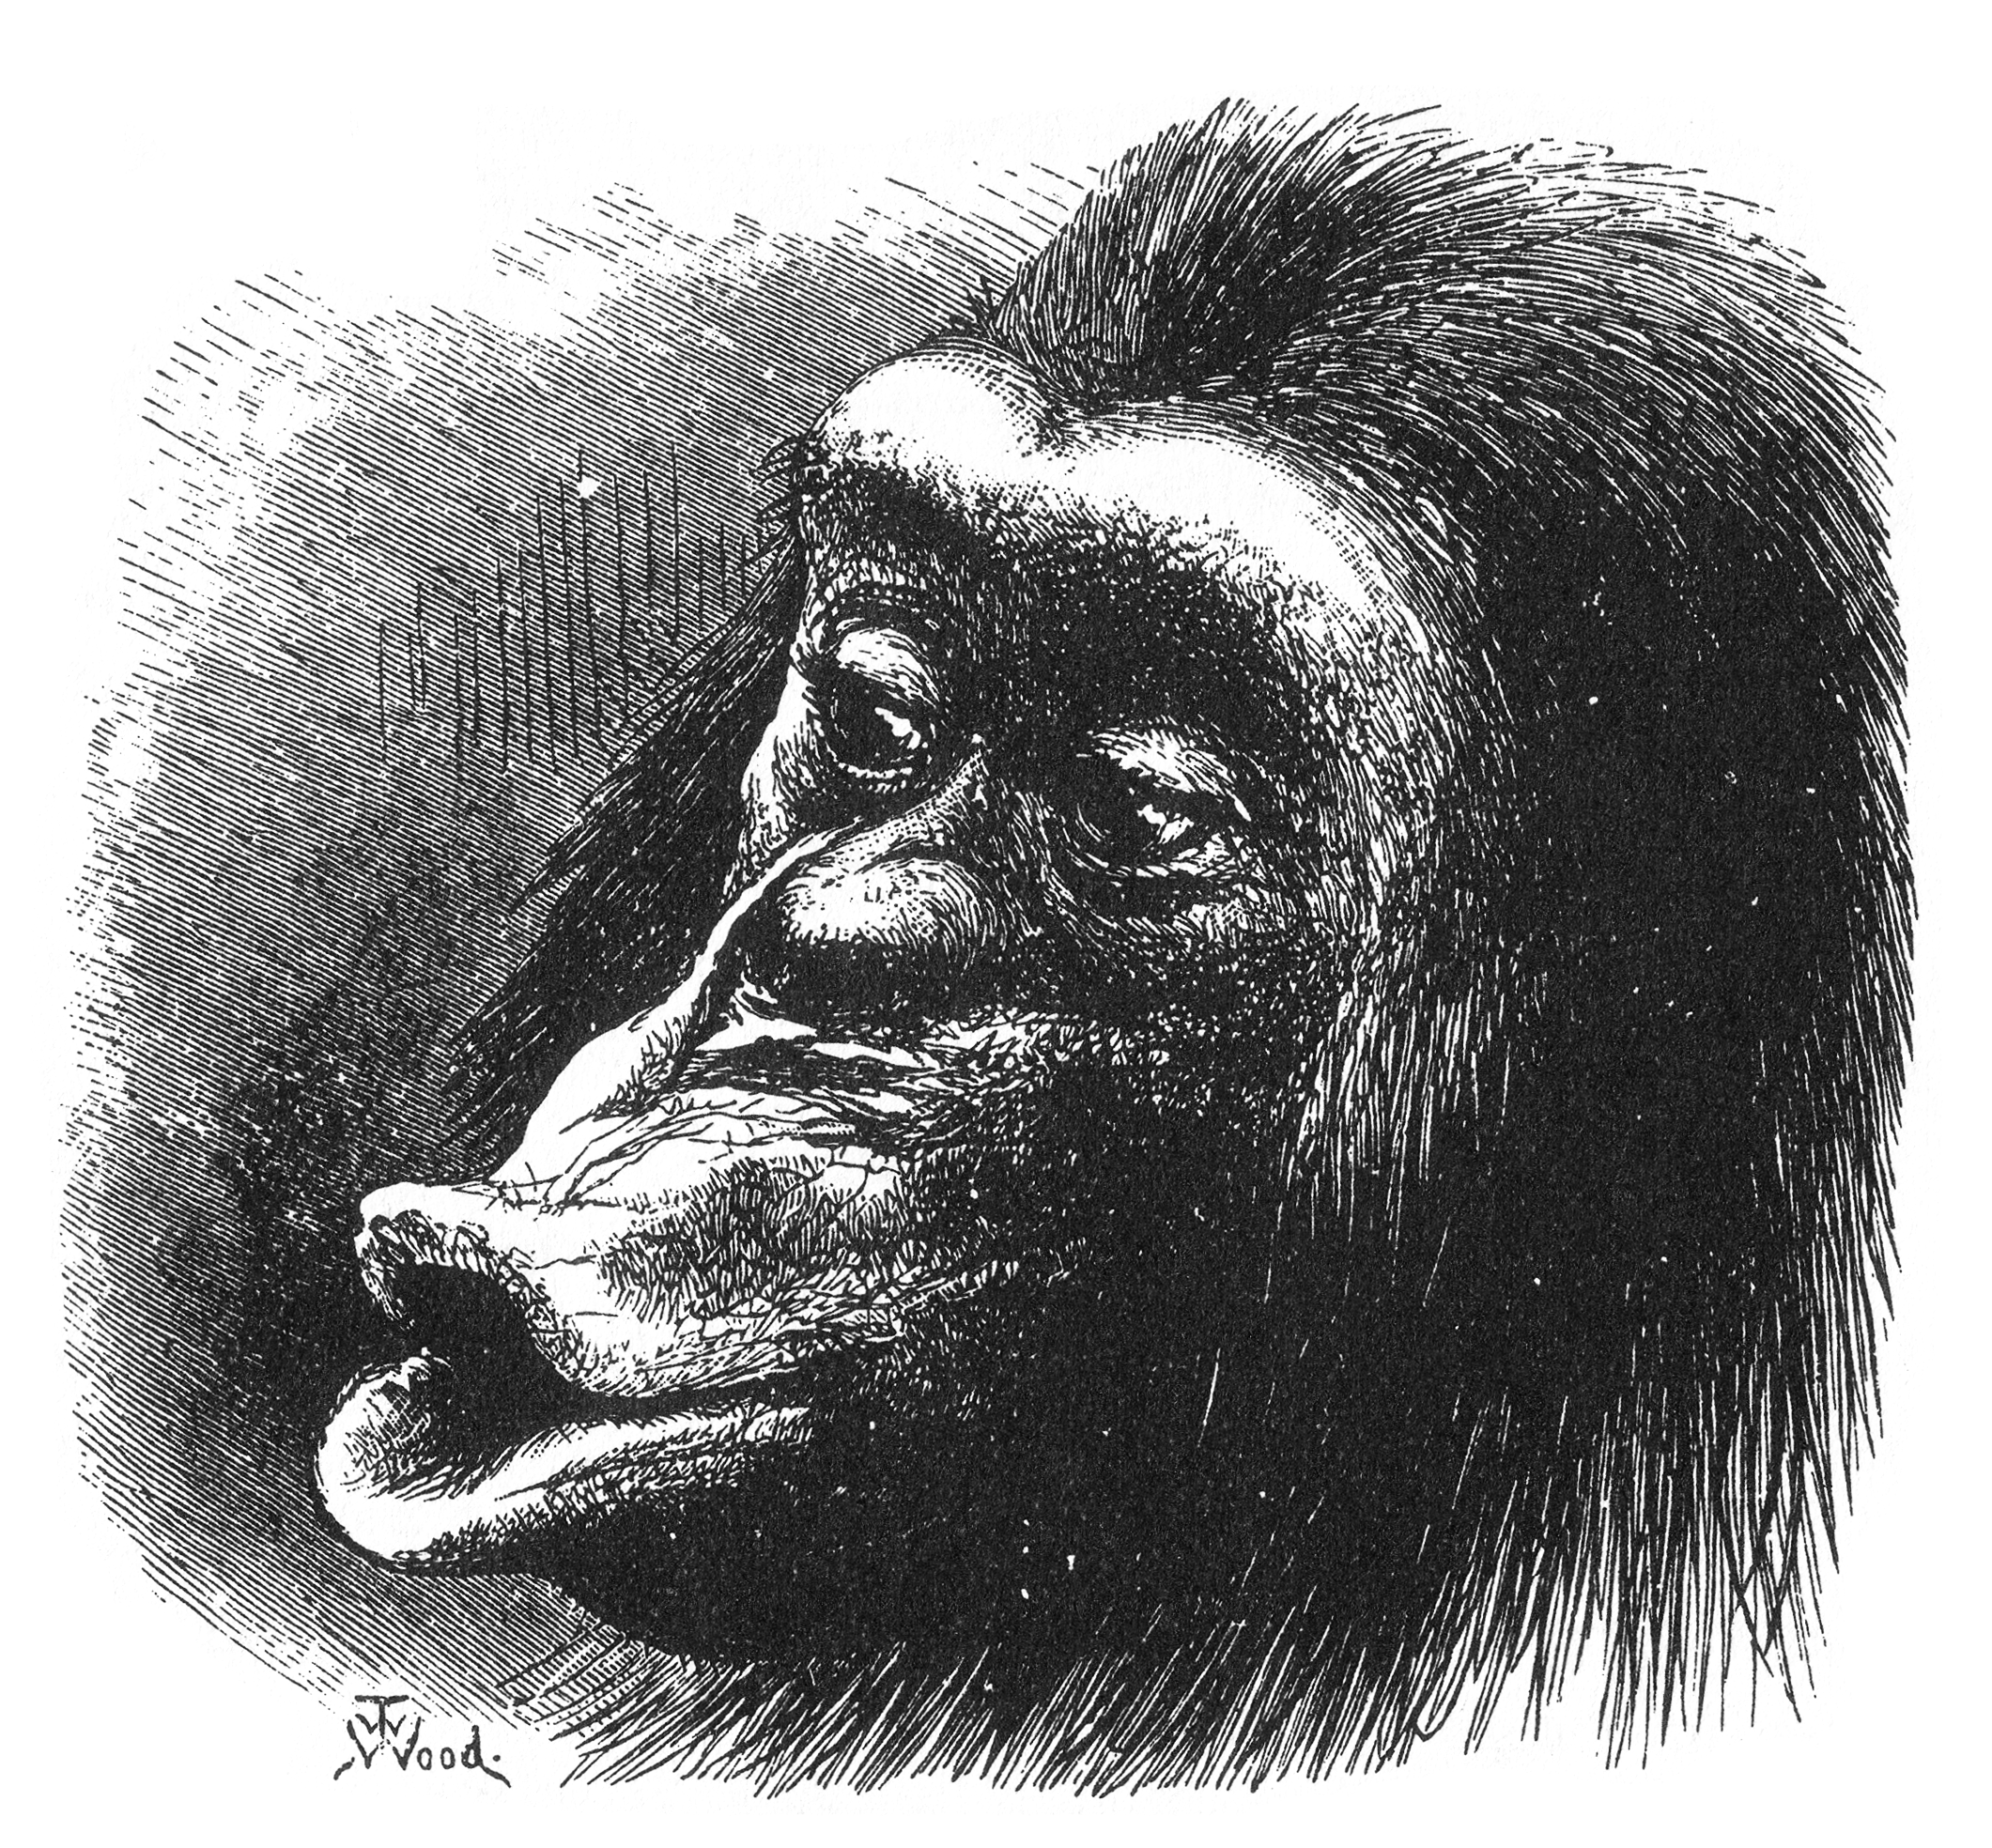 Non-human primates are less able to produce complex sounds.   T.W. Wood/Wikimedia Commons  (public domain)